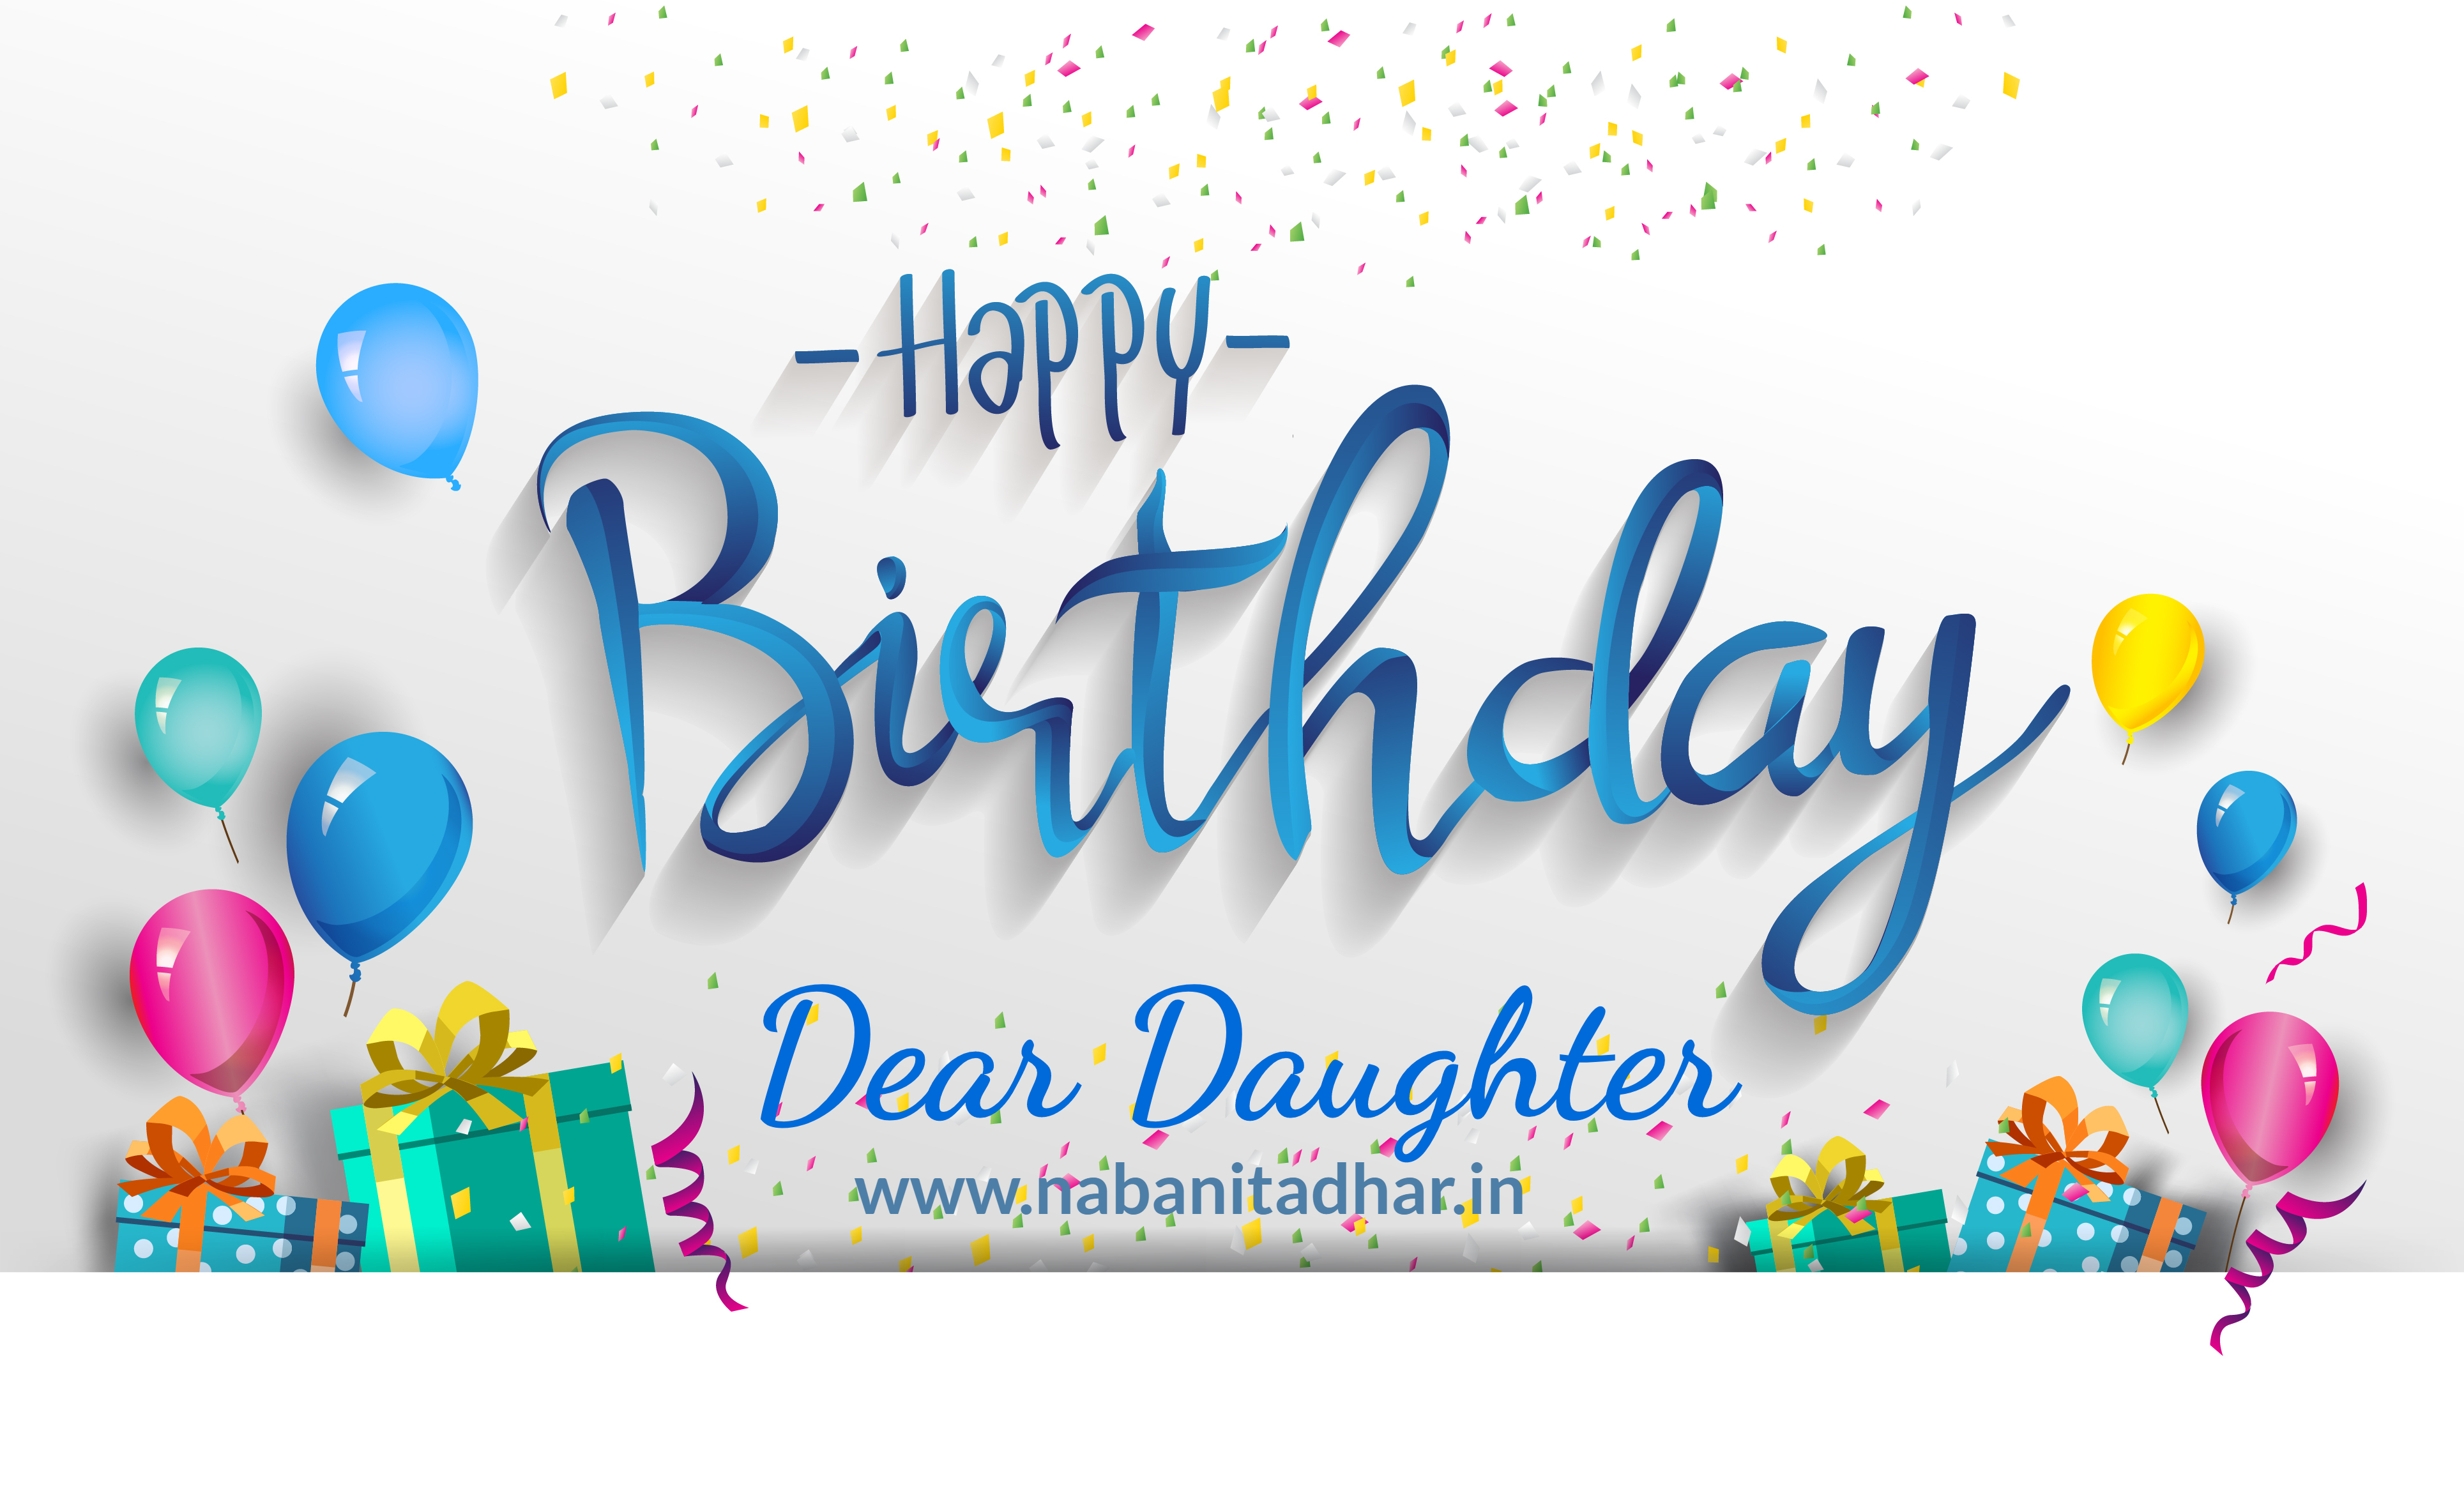 Letter to a daughter on her birthday. Letter to a daughter from a mom. #momlife #motherdaughter